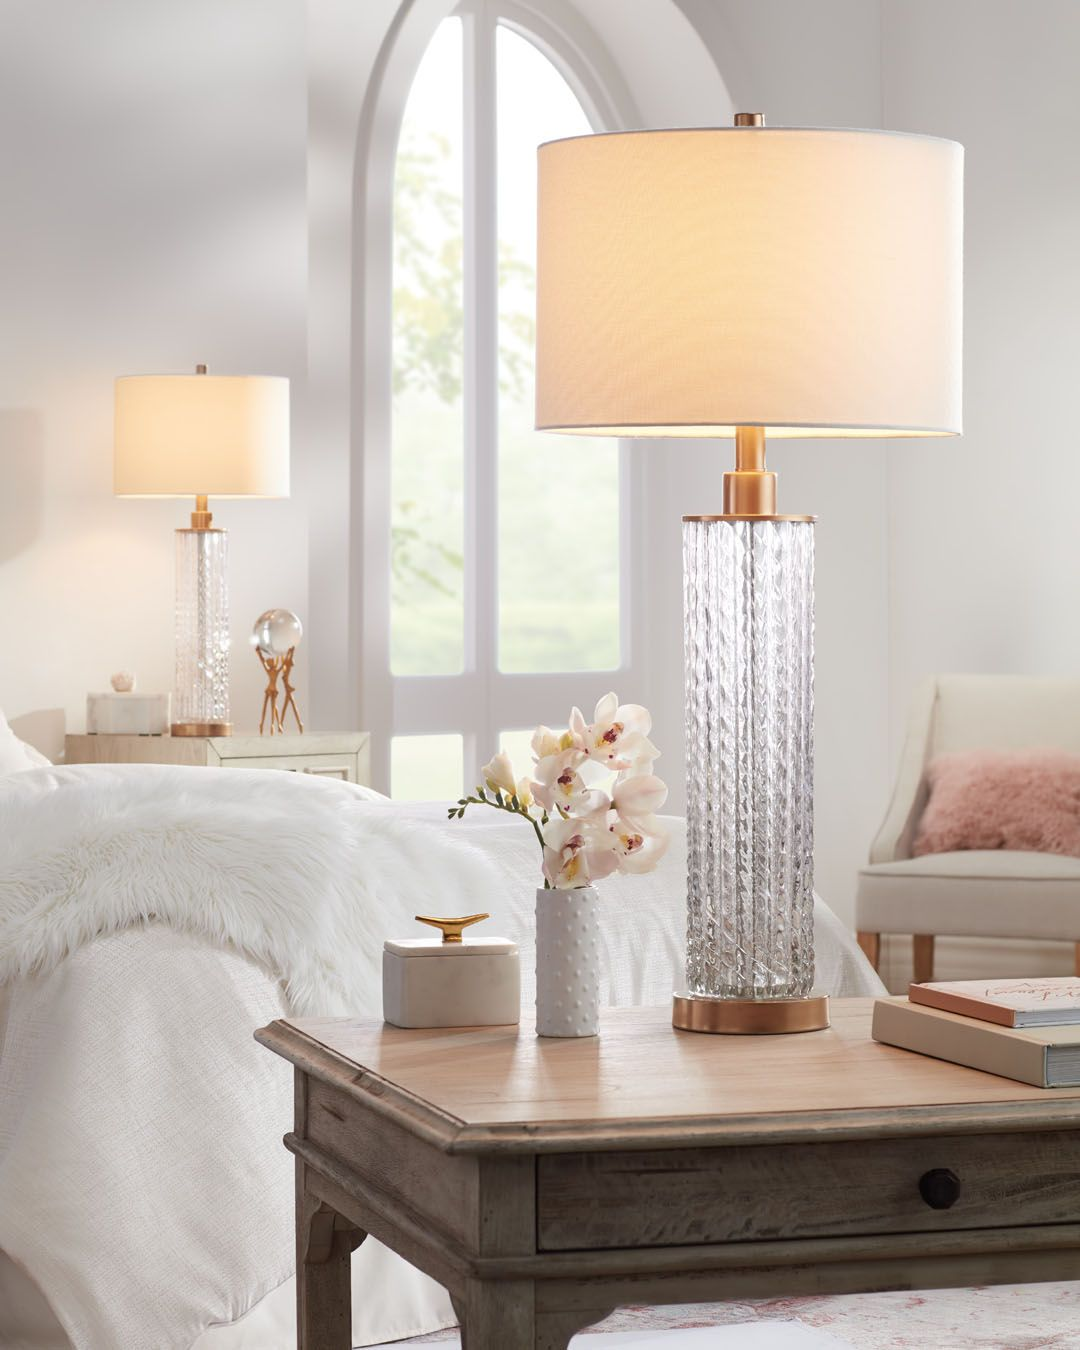 Transitional inspired table lamps.   #transitional #transitionalstyle #transitionaldecor #girlie #femininestyle #lighting #lamps #glam #home #homedecor #bedroom #bedroomdecor #livingroom #livingroomdecor #blush #gold #interiorinspiration #interiordesign